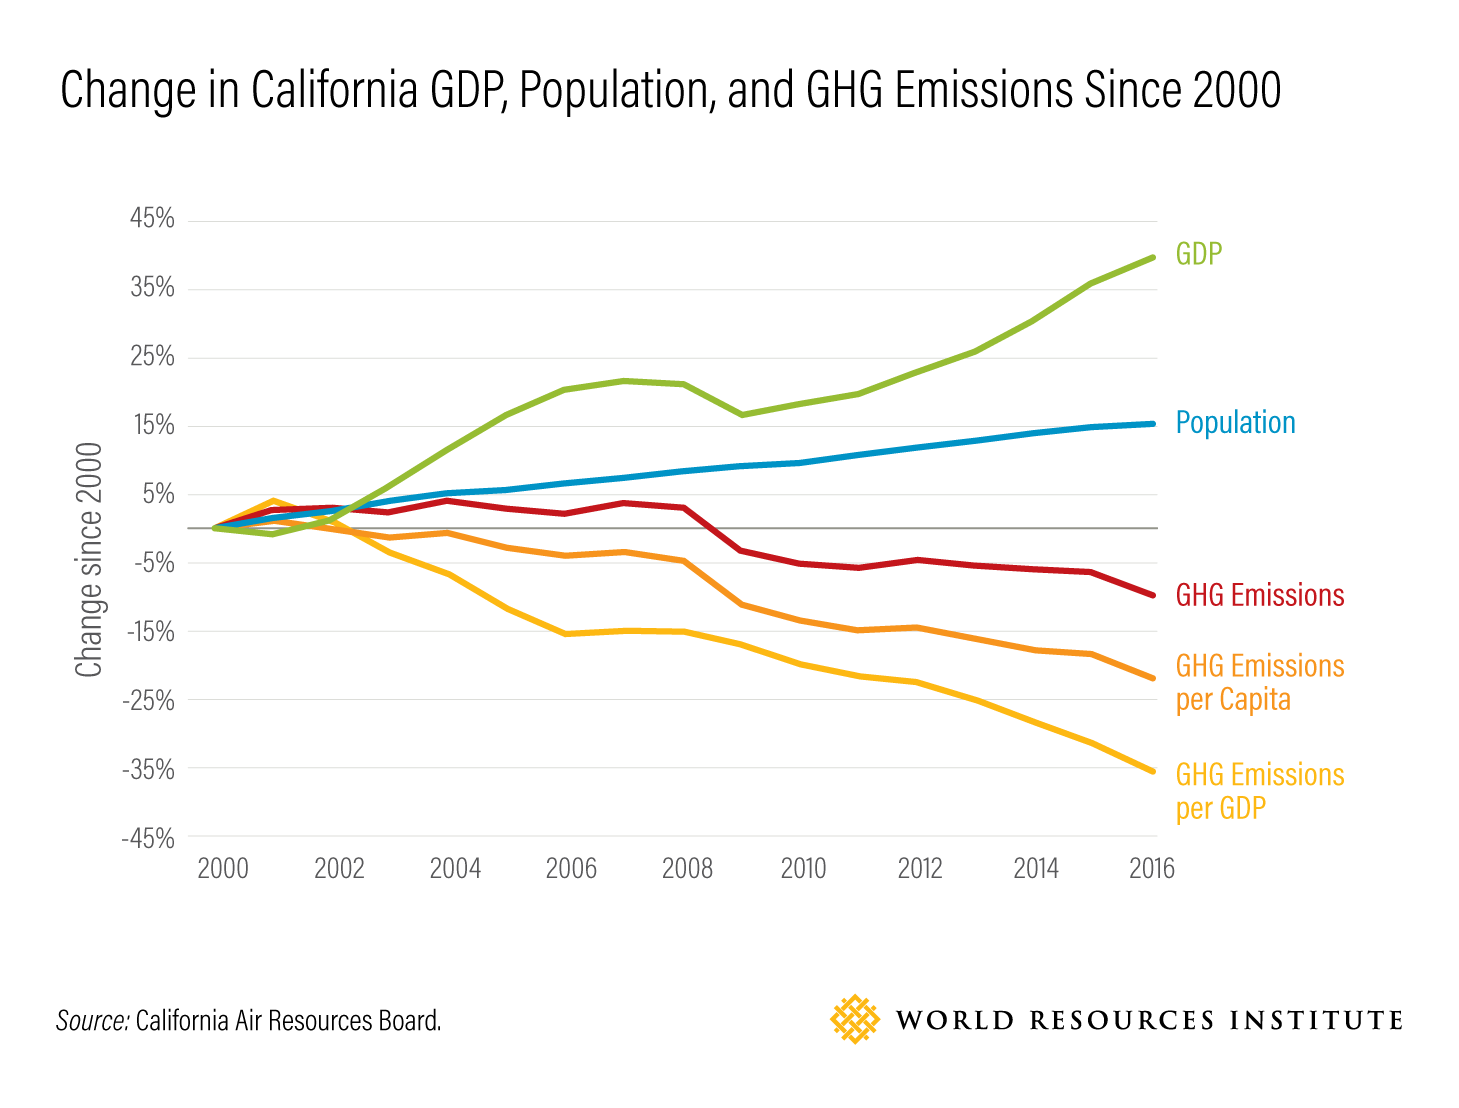 Change in California GDP, Population, and GHG Emissions Since 2000